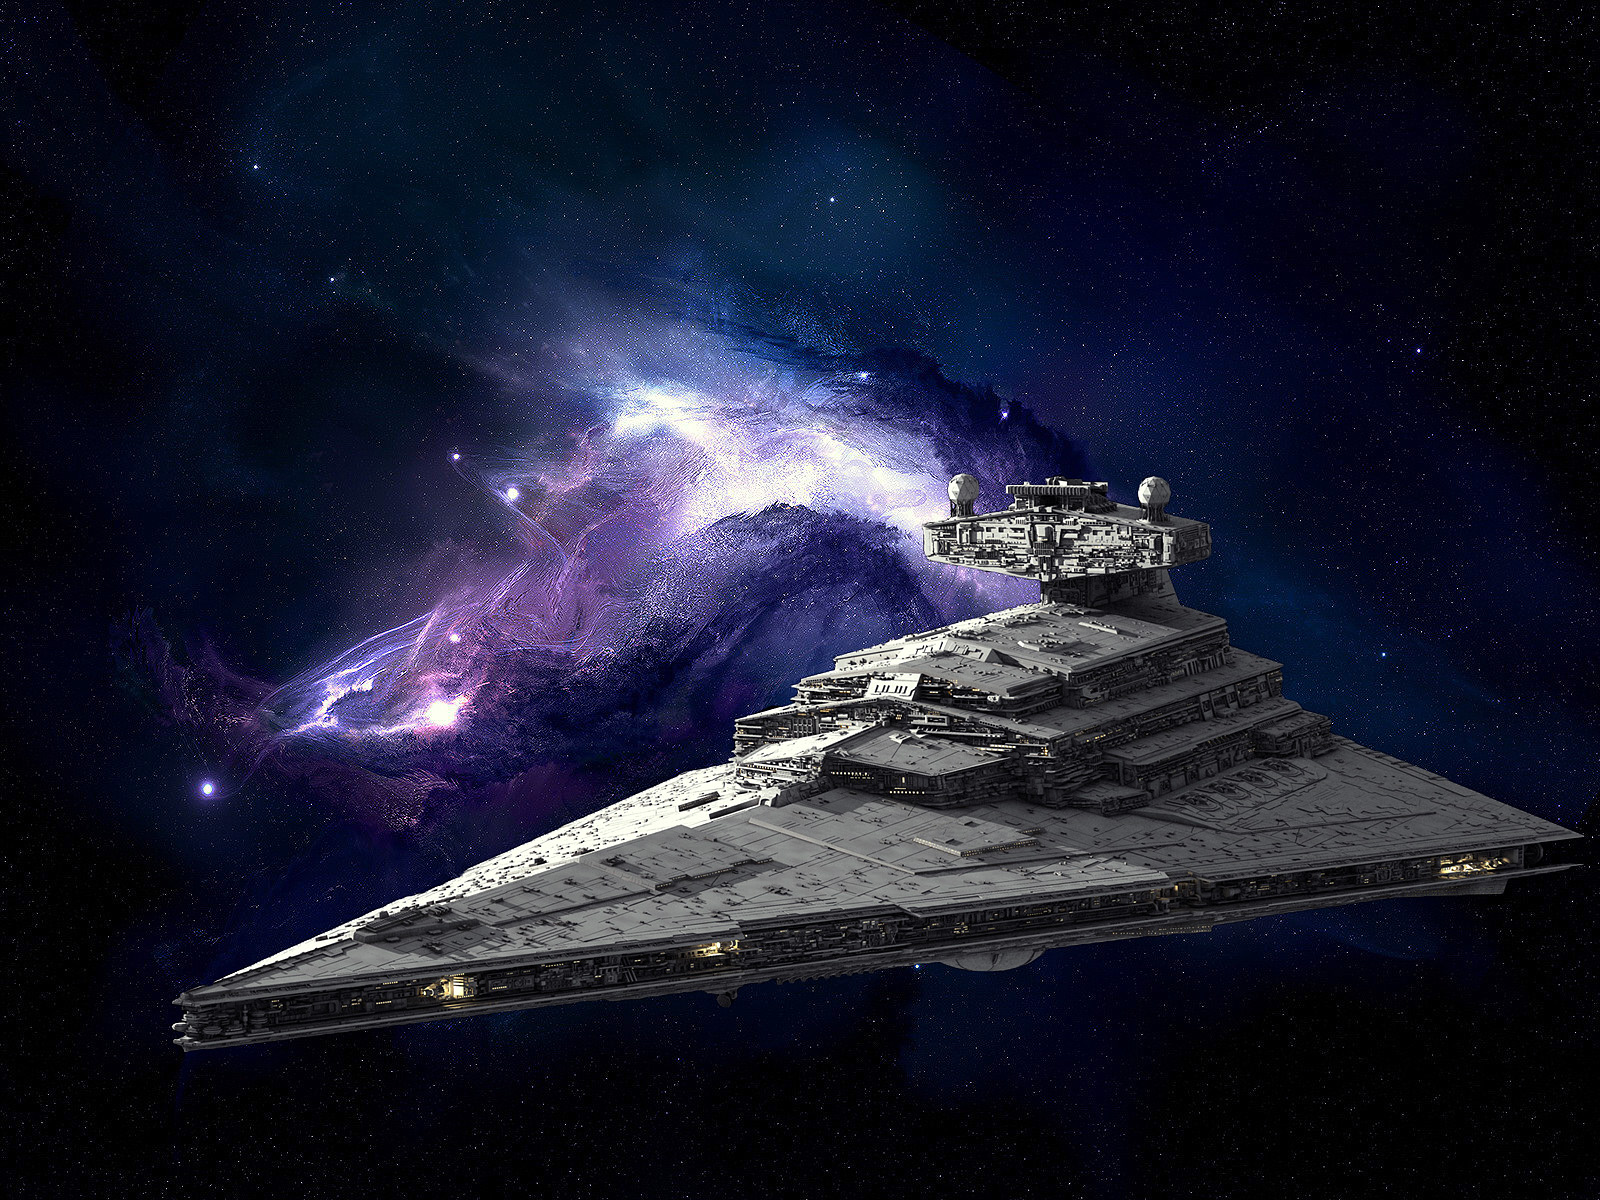 Star Wars Eternal Conflicts Phase 2 Quick Patch File Mod Db